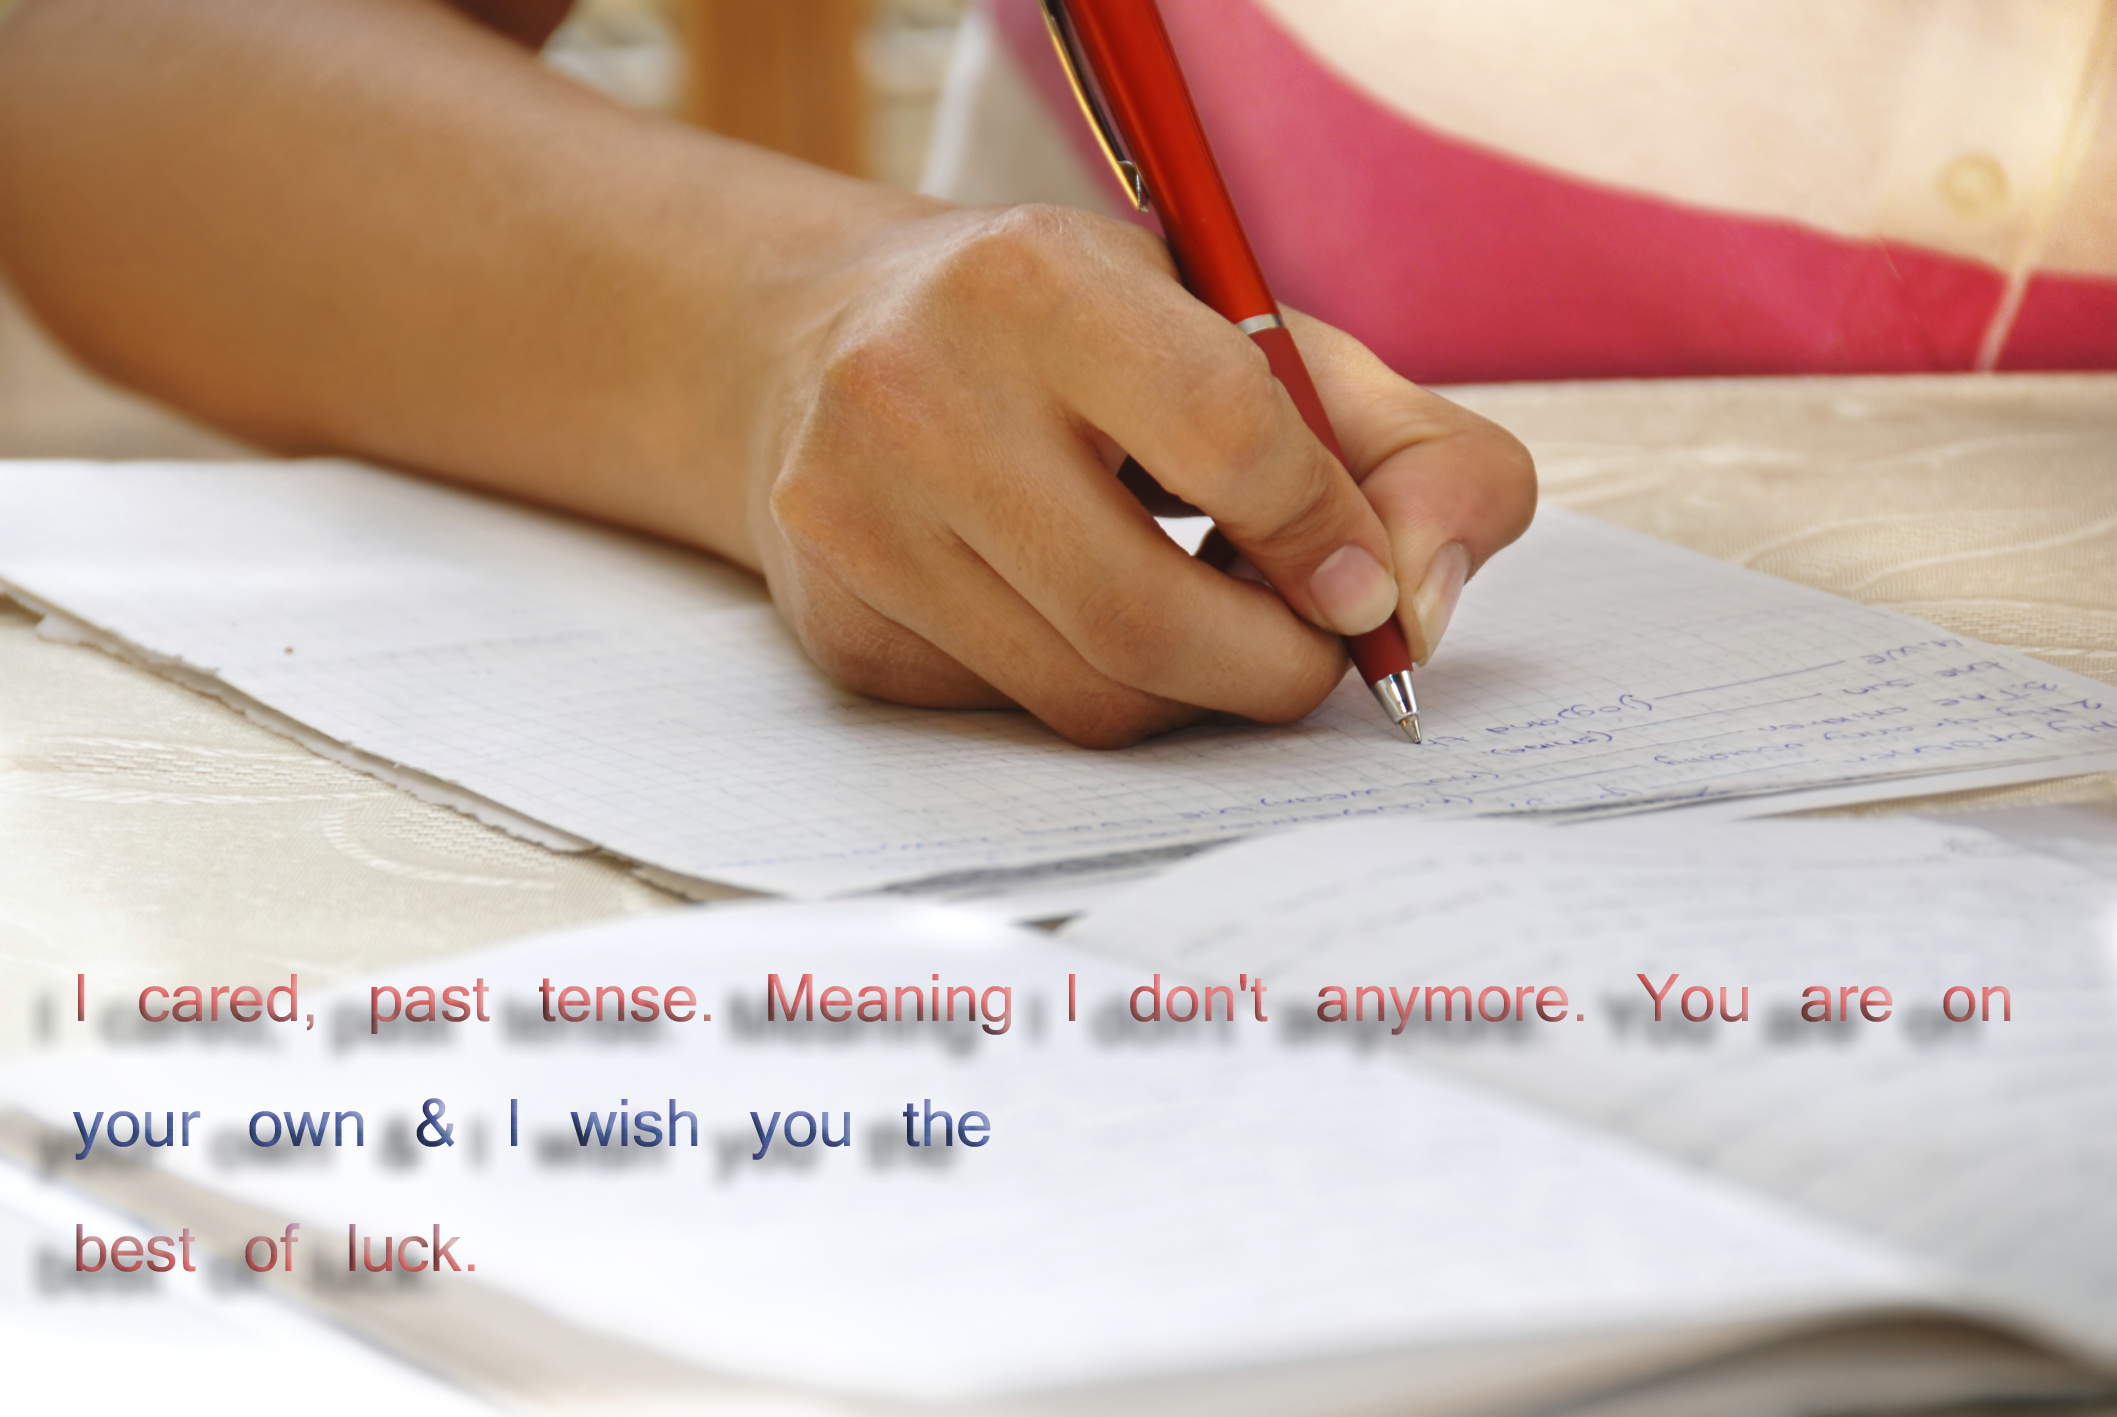 Download Wallpaper For Best Of Luck For Exams Gallery